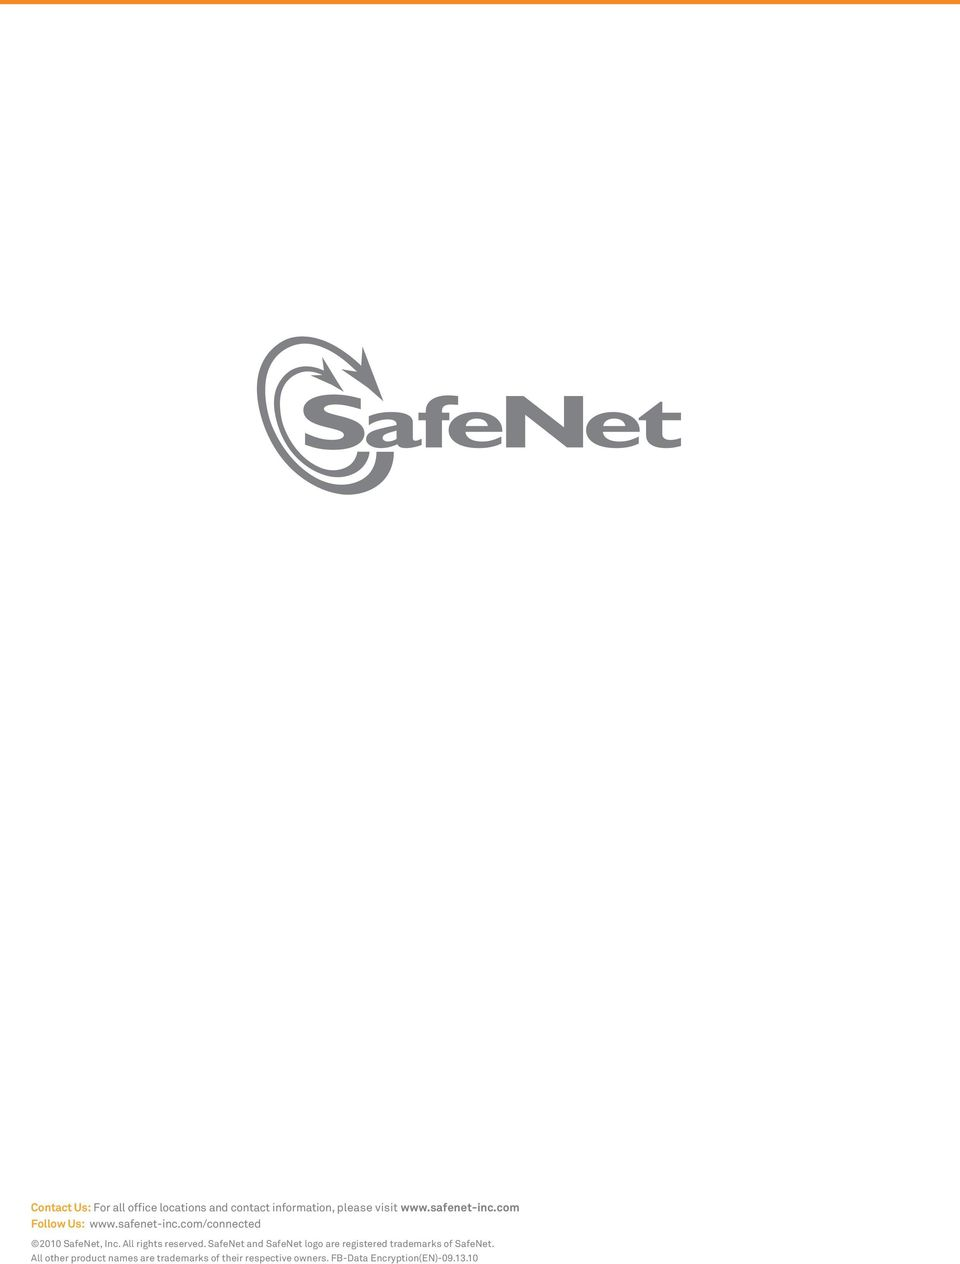 All rights reserved. SafeNet and SafeNet logo are registered trademarks of SafeNet.